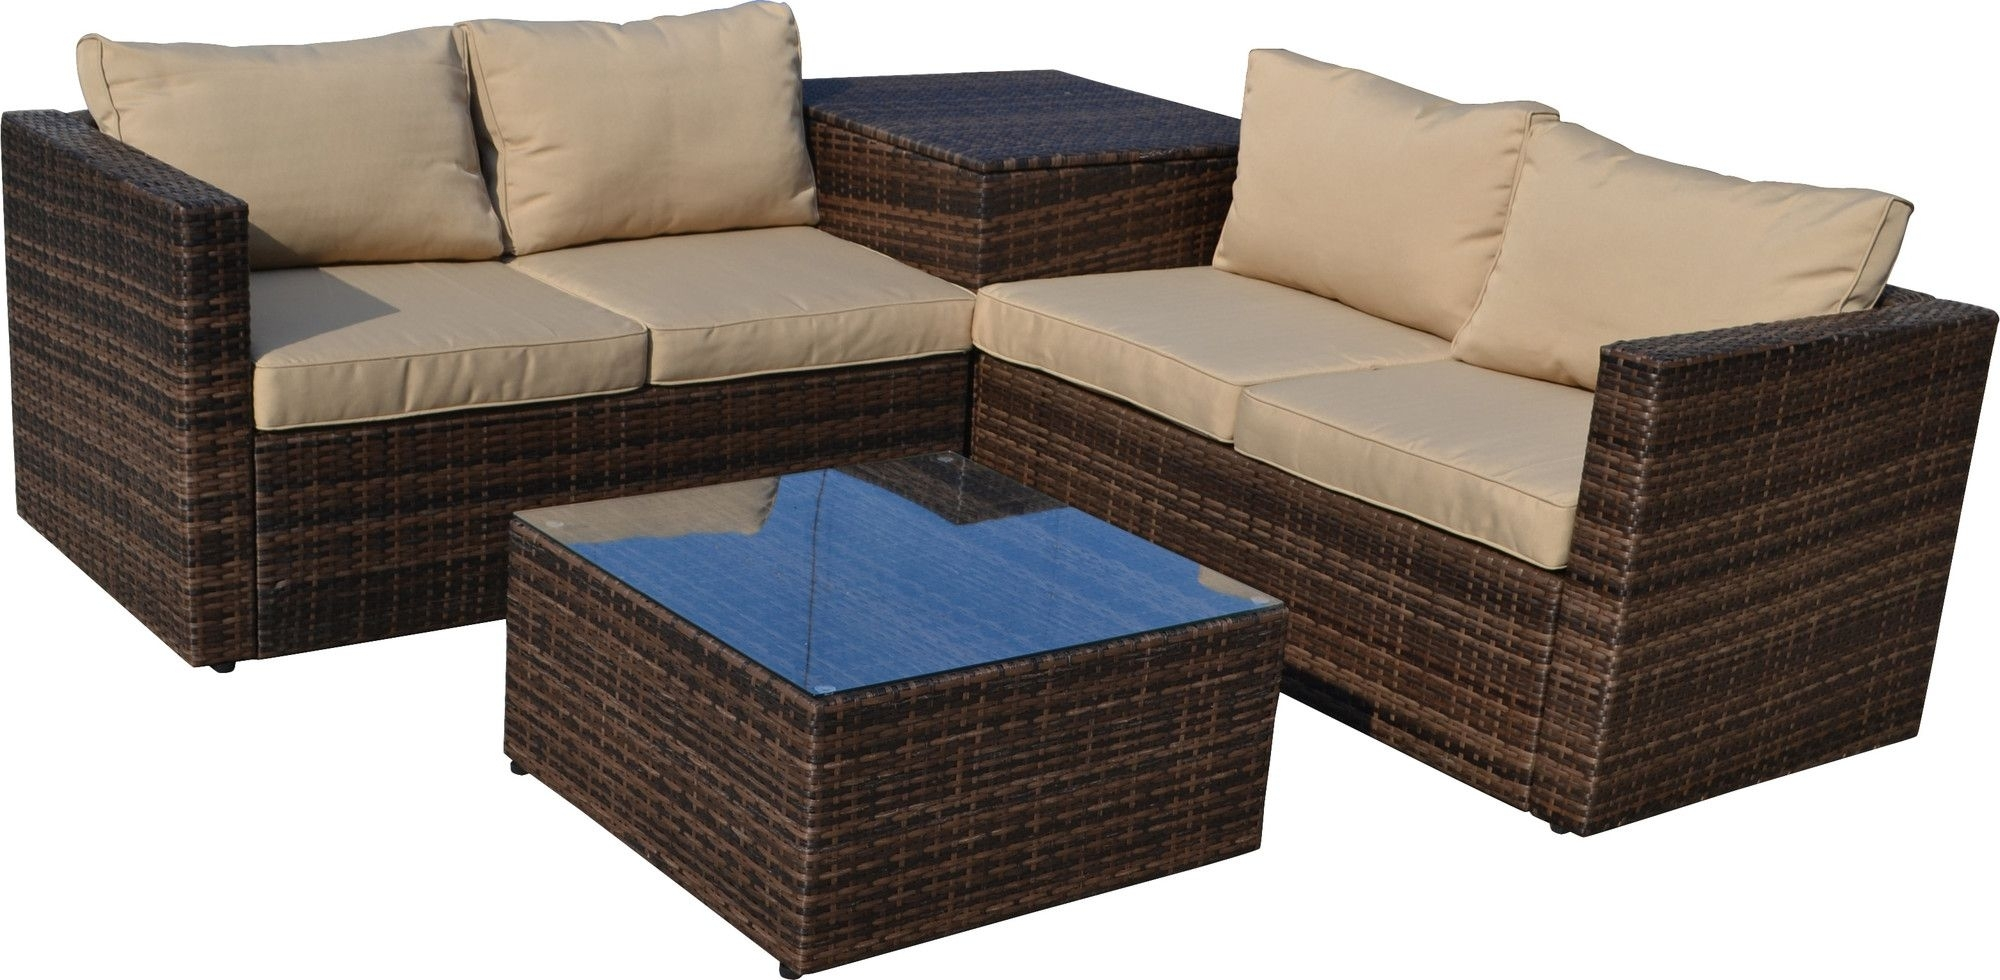 4-Piece Aidan Patio Seating Group | Products | Pinterest | Outdoor in Aidan 4 Piece Sectionals (Image 1 of 30)